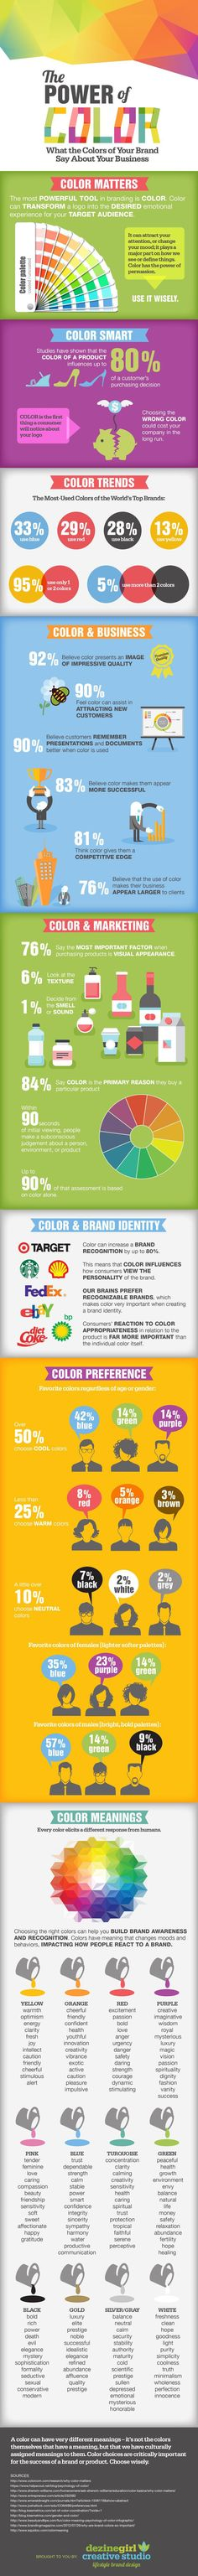 What the Colors of your brand says about your business #INFOGRAFIA #INFOGRAPHIC #MARKETING